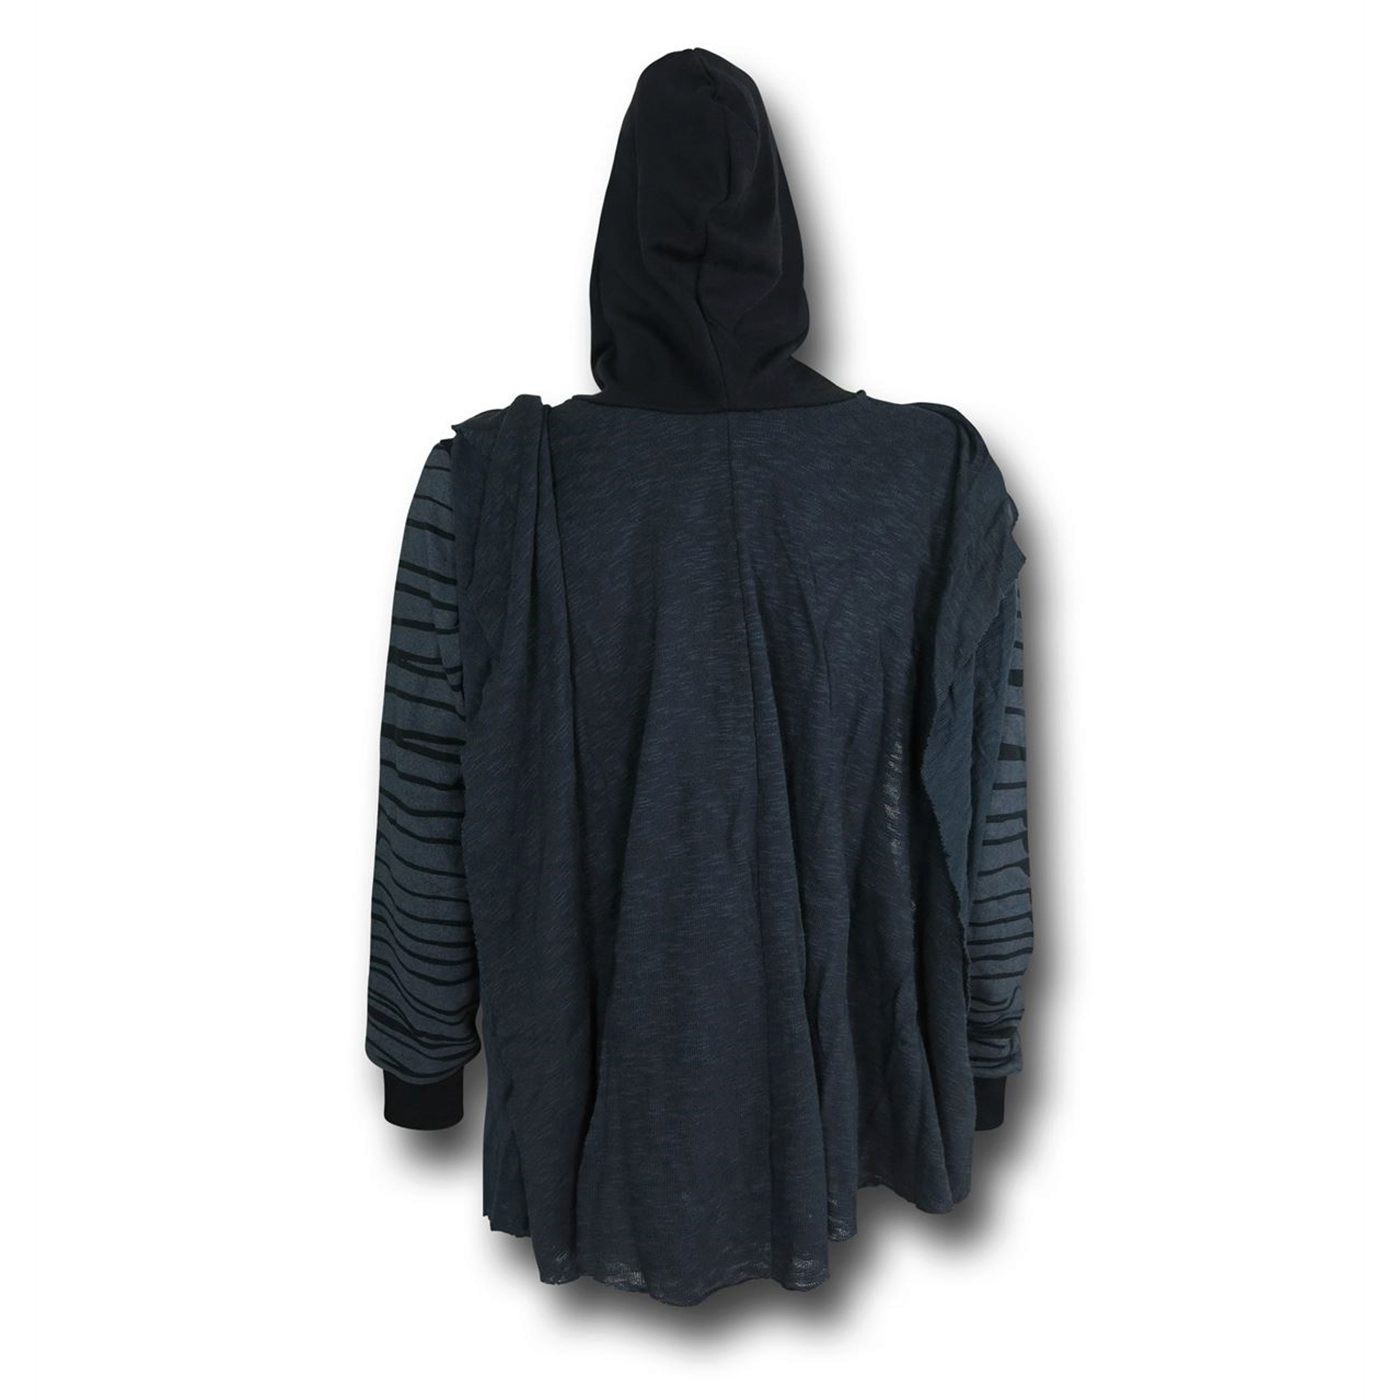 Star Wars I Am Kylo Ren Men's Costume Hoodie